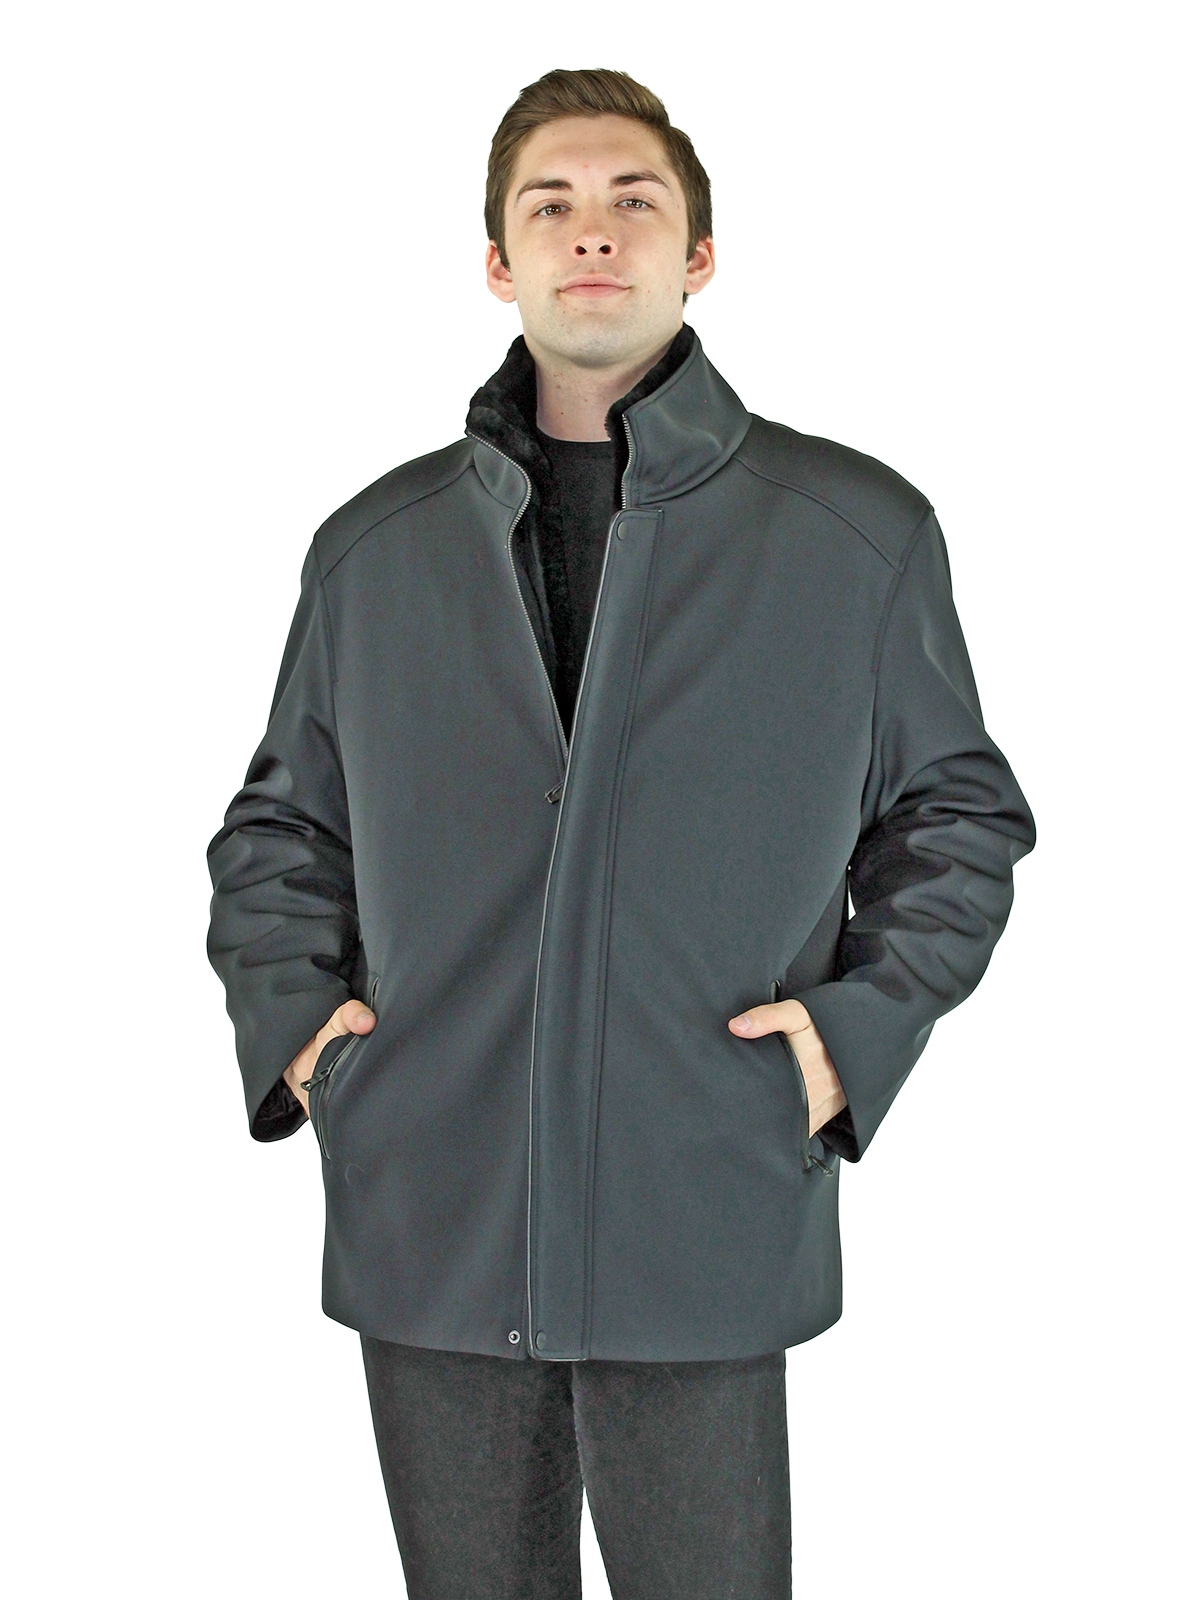 Man's Black Fabric Jacket with Zip Out Black Shearling Lamb Lining